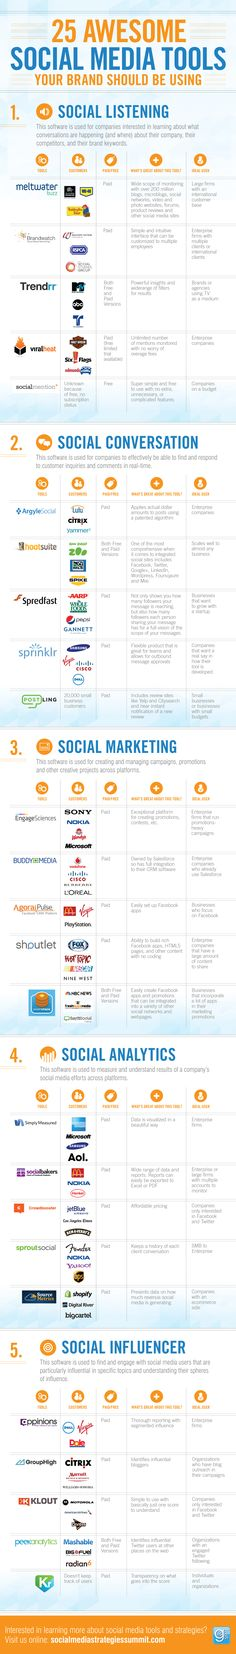 26 Top Social Media Management Tools for Businesses and Brands [INFOGRAPHIC] ~ Digital Information World | #TheMarketingAutomationAlert